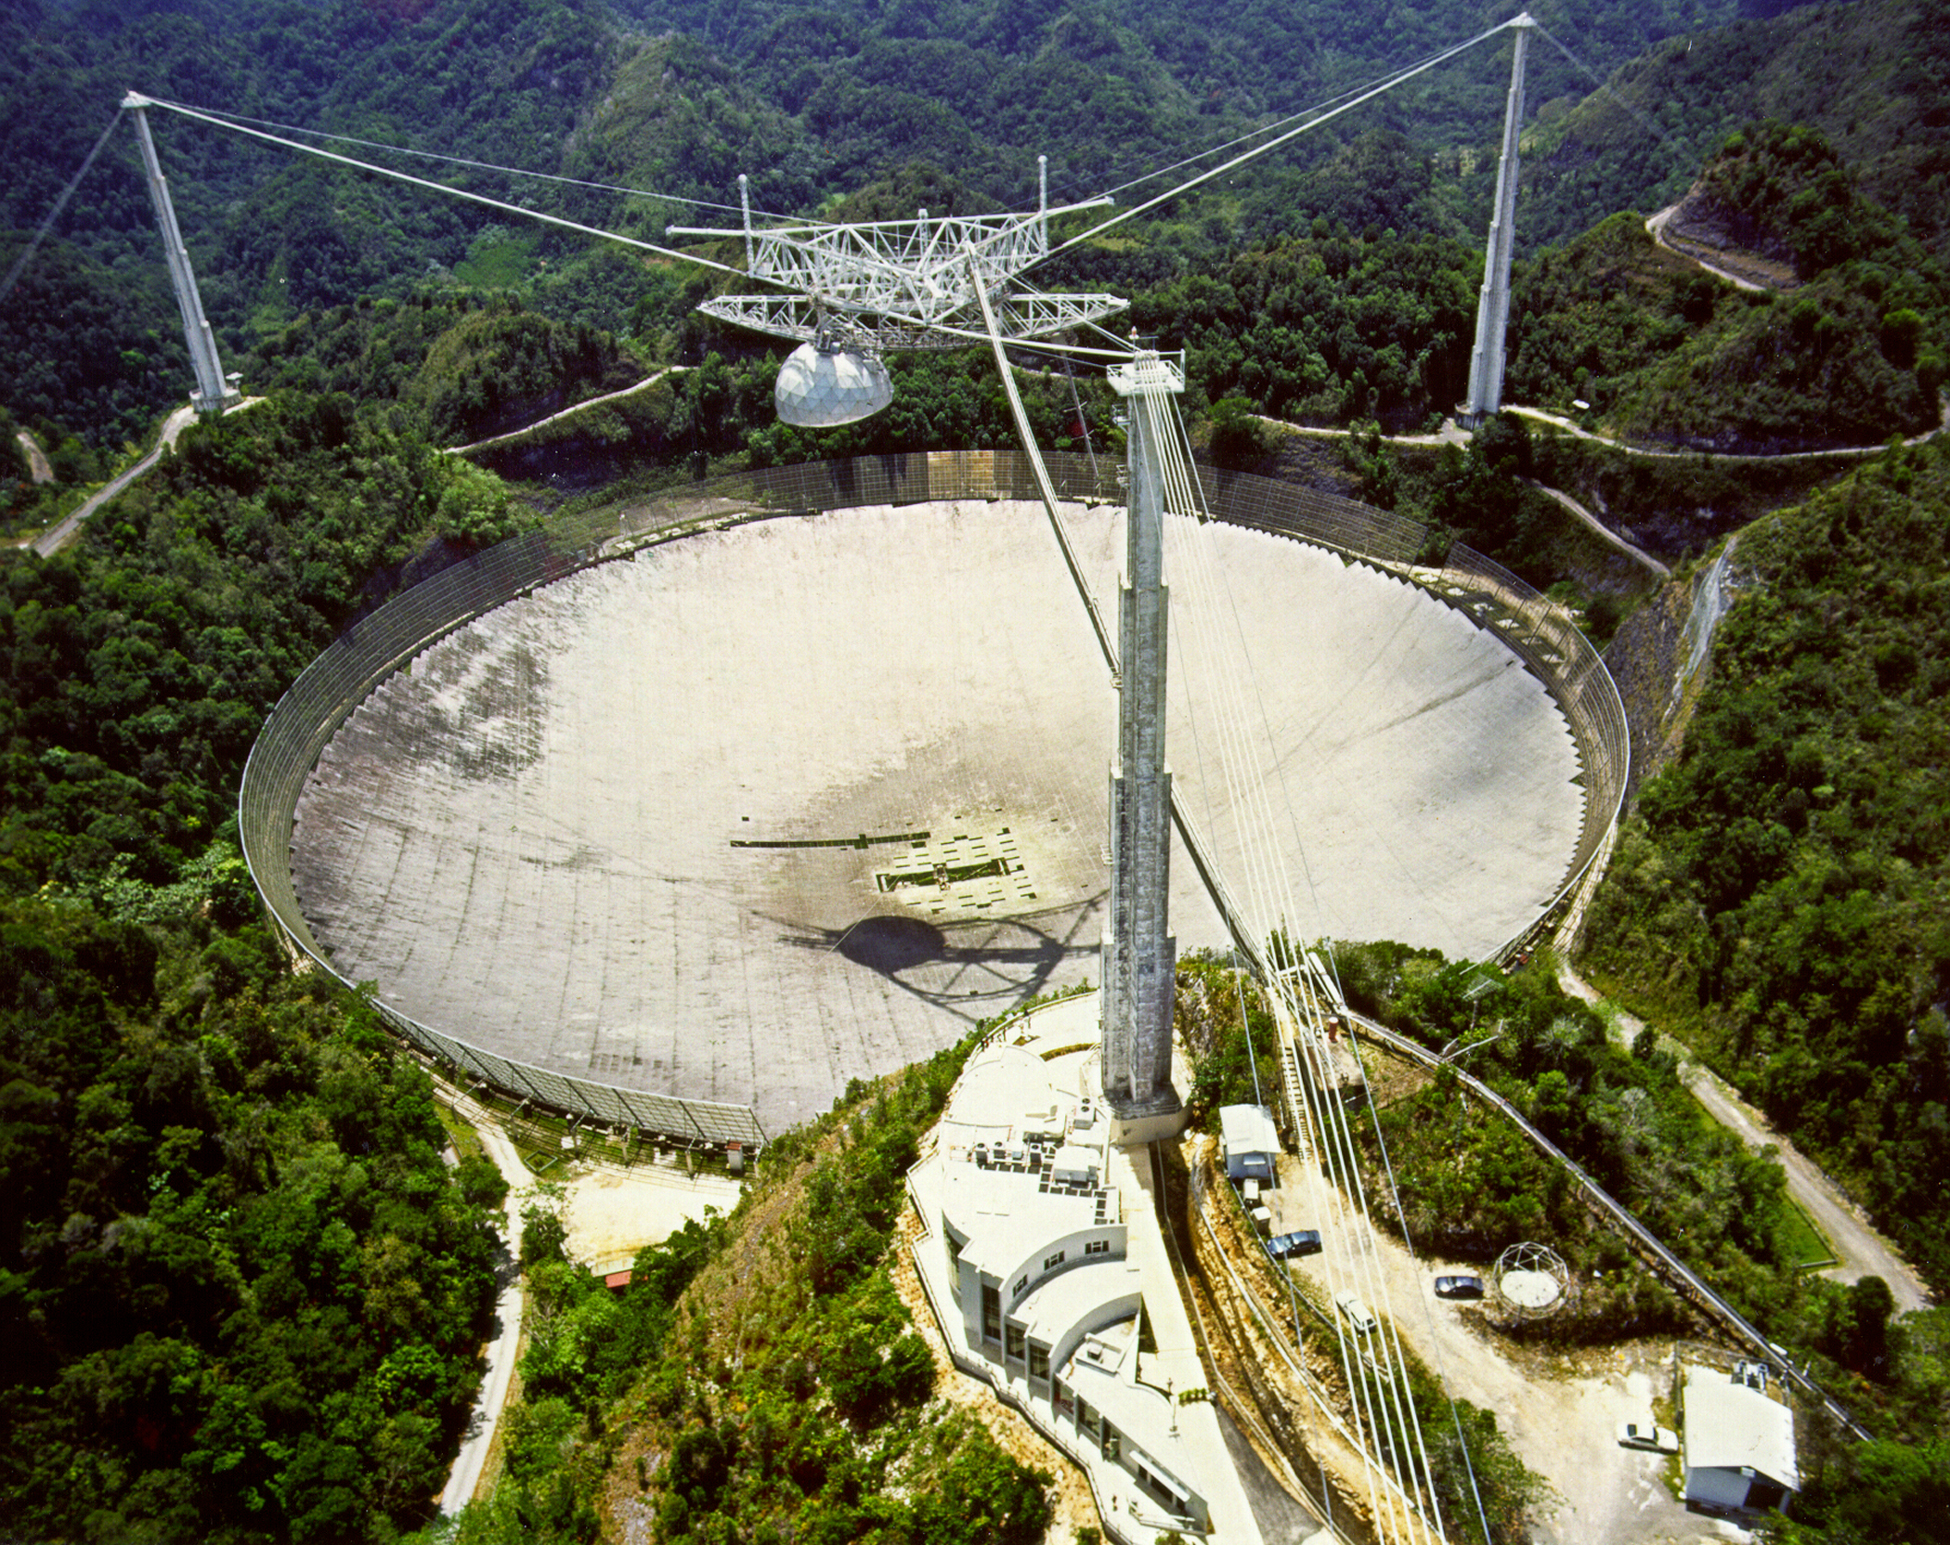 General views of the arecibo observatory